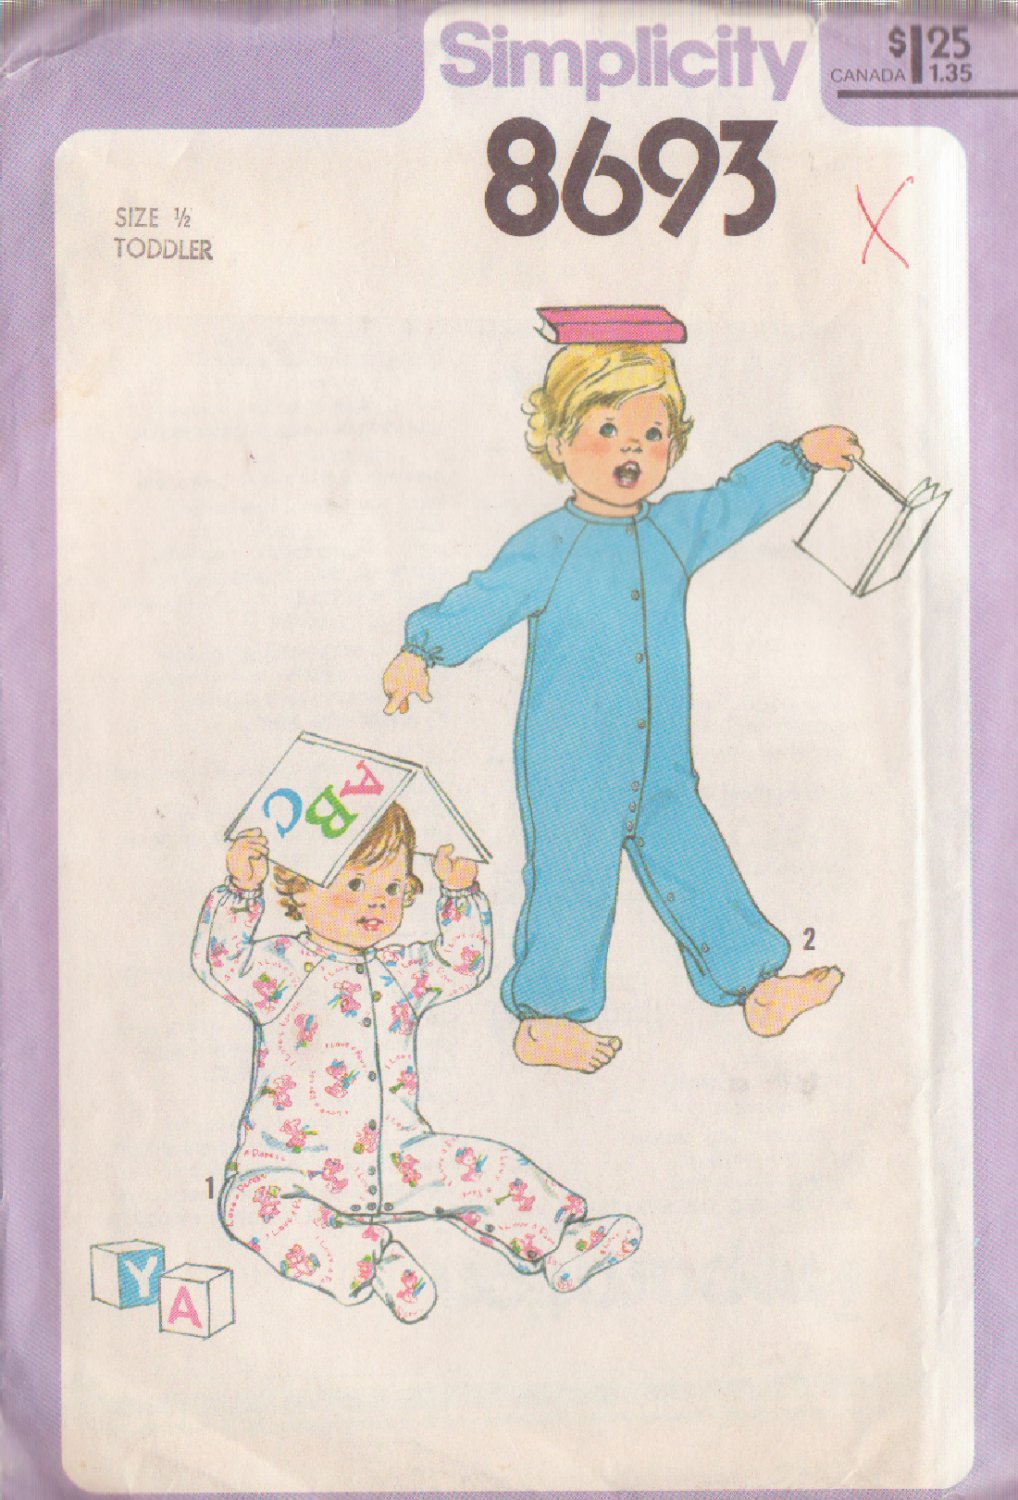 SIMPLICITY 8693 VINTAGE PATTERN TODDLERS' SLEEPER IN 2 VARIATIONS SIZE ONE HALF